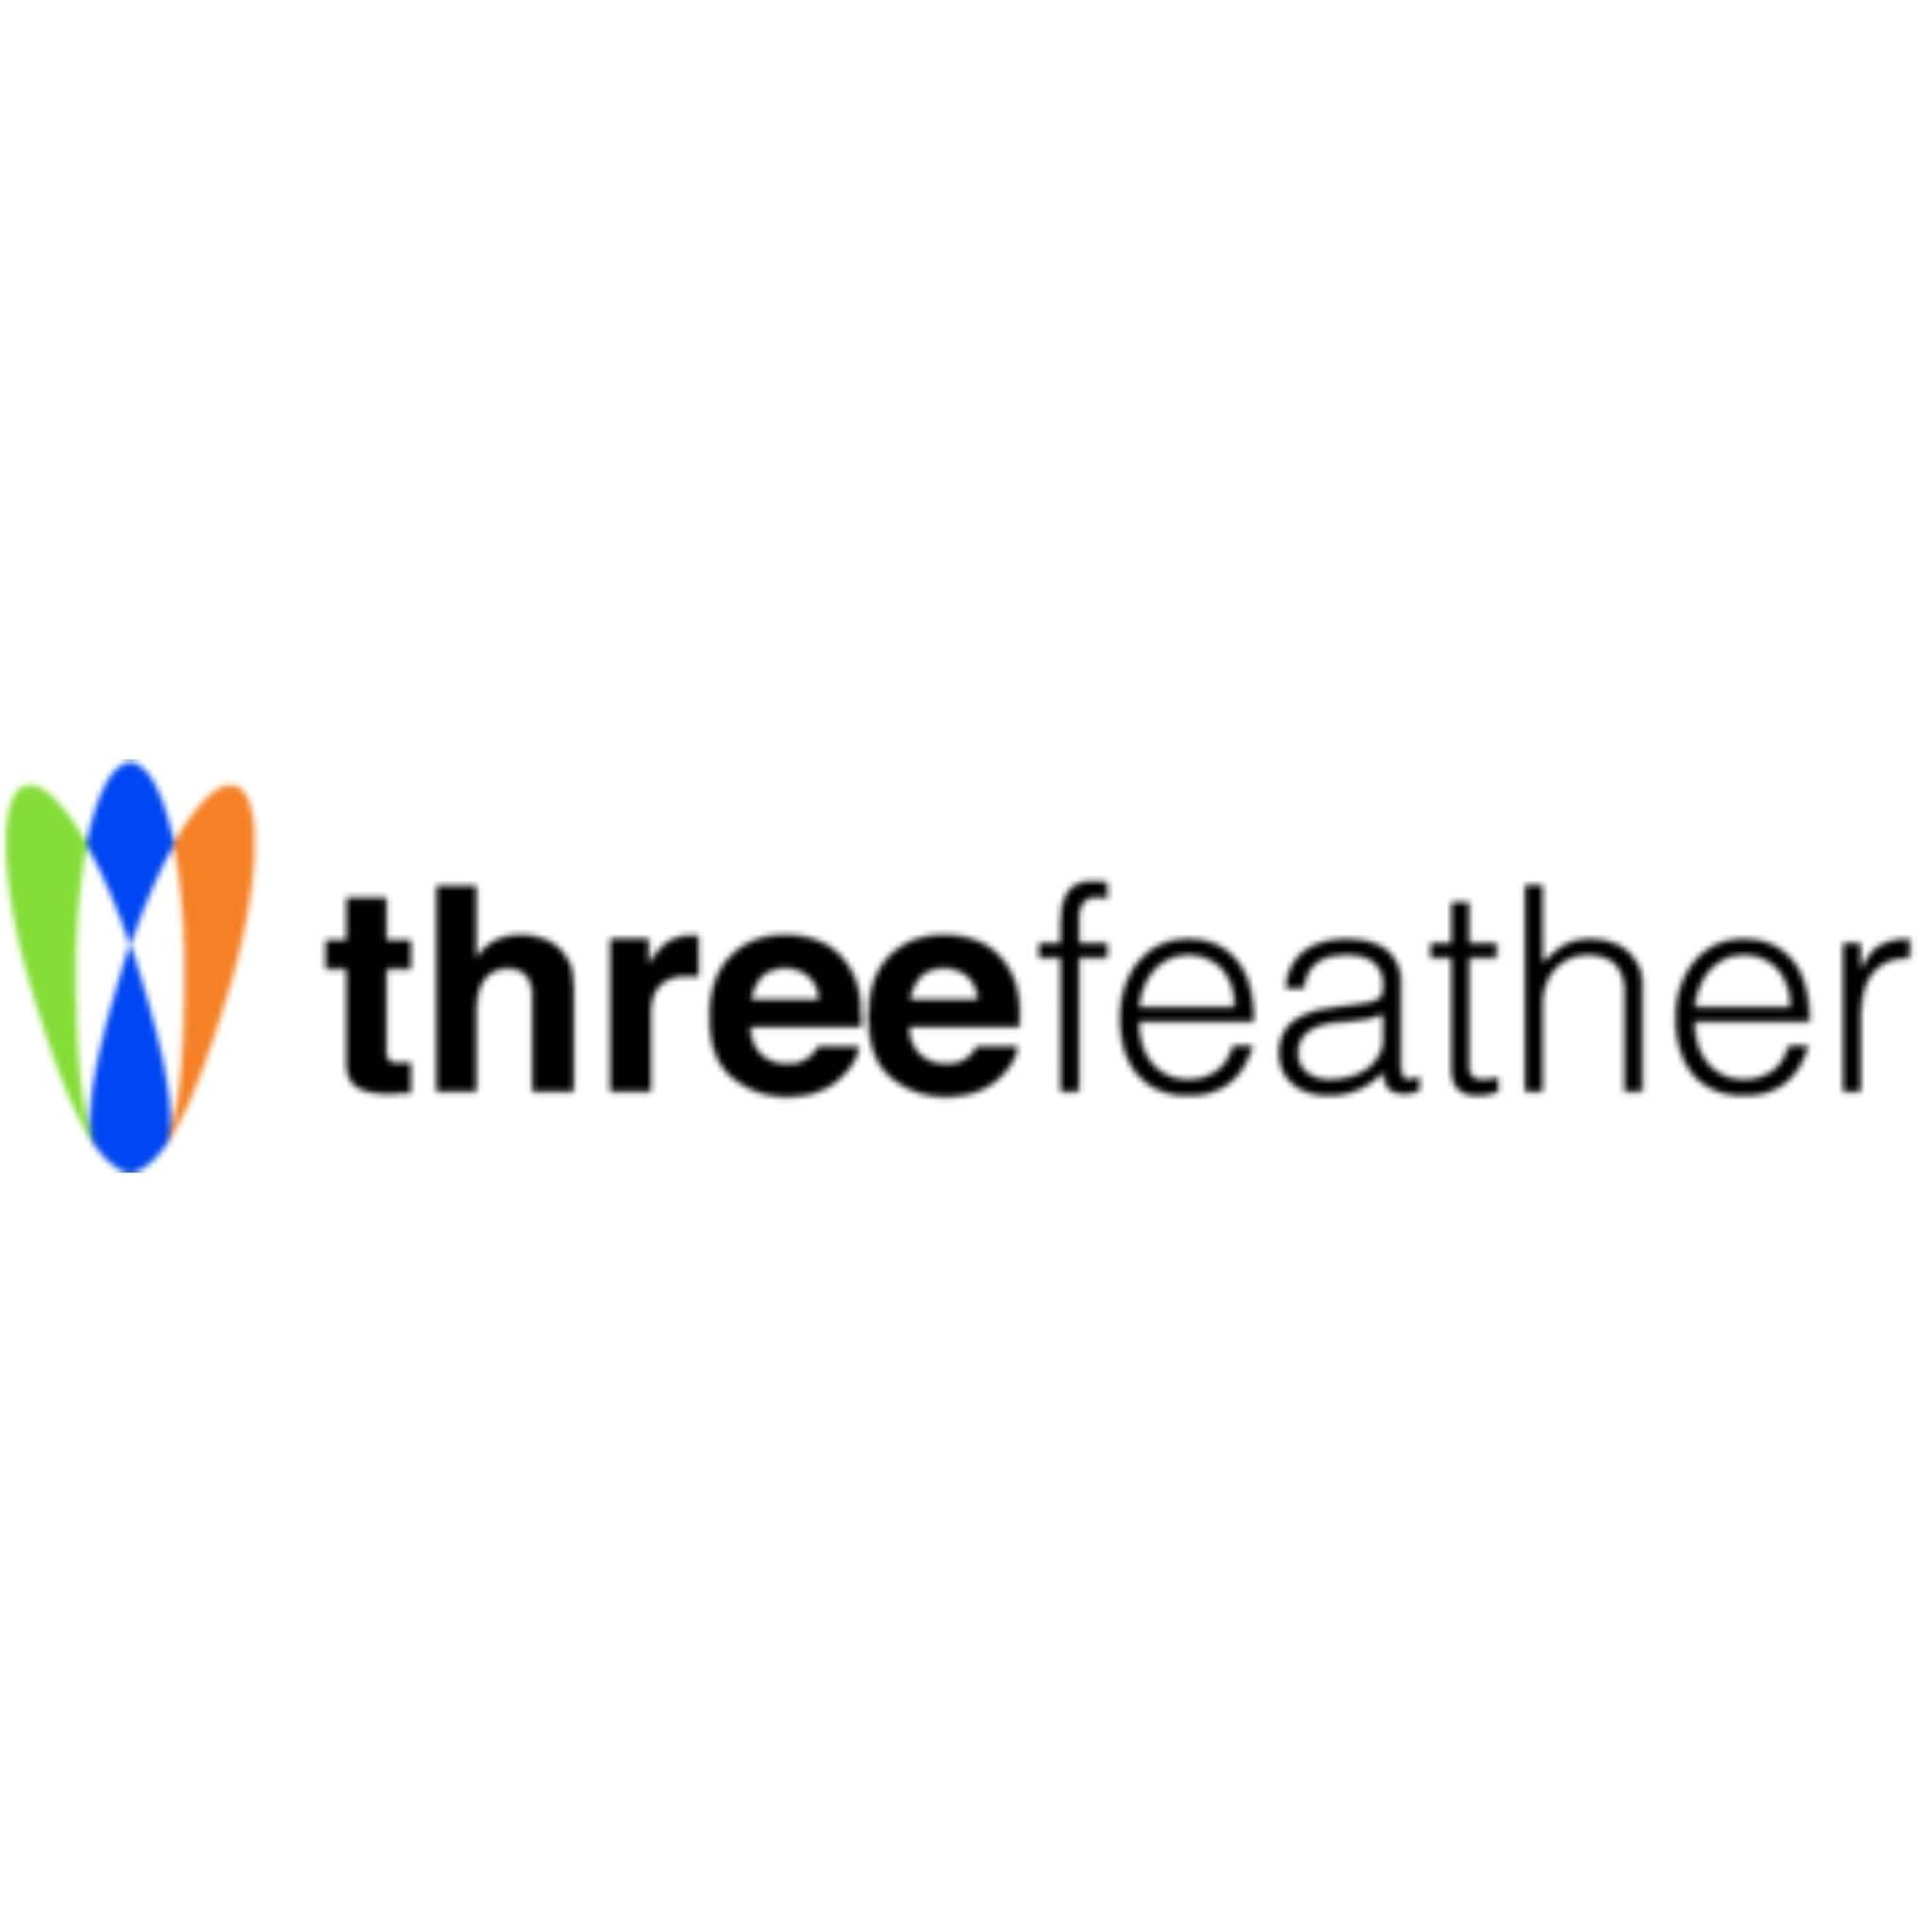 Three Feathers Logo, Team Perfect West